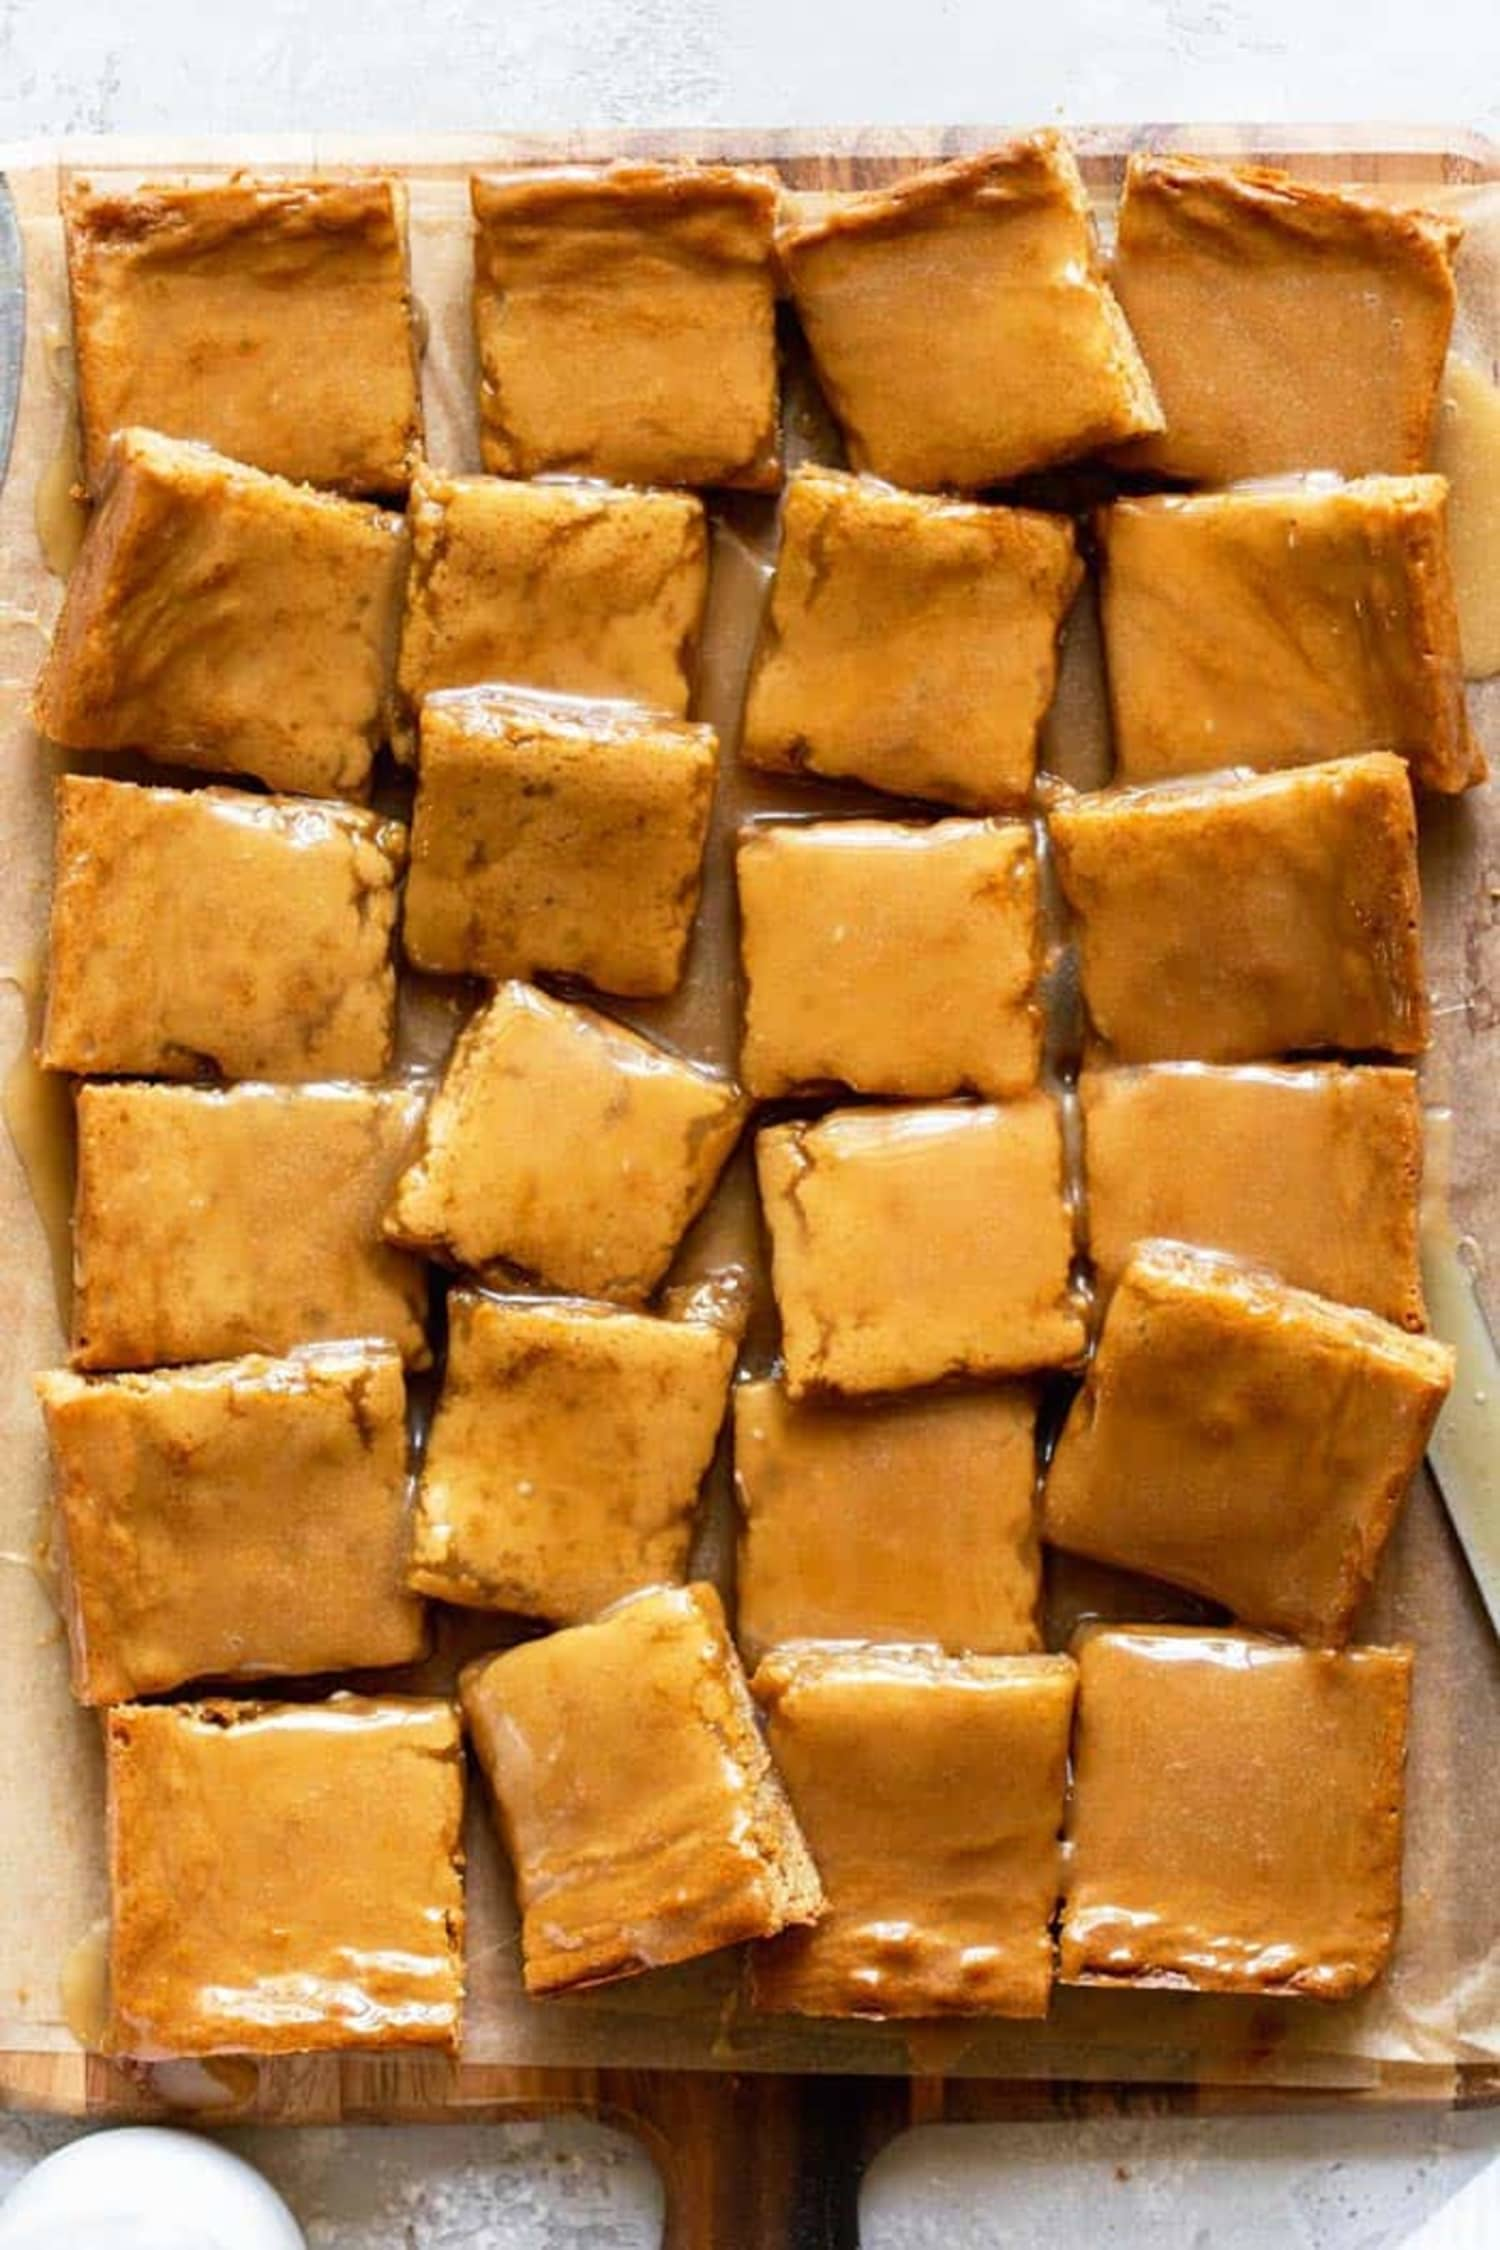 Make These Brown Butter Maple Blondies Your Next Fall Baking Project